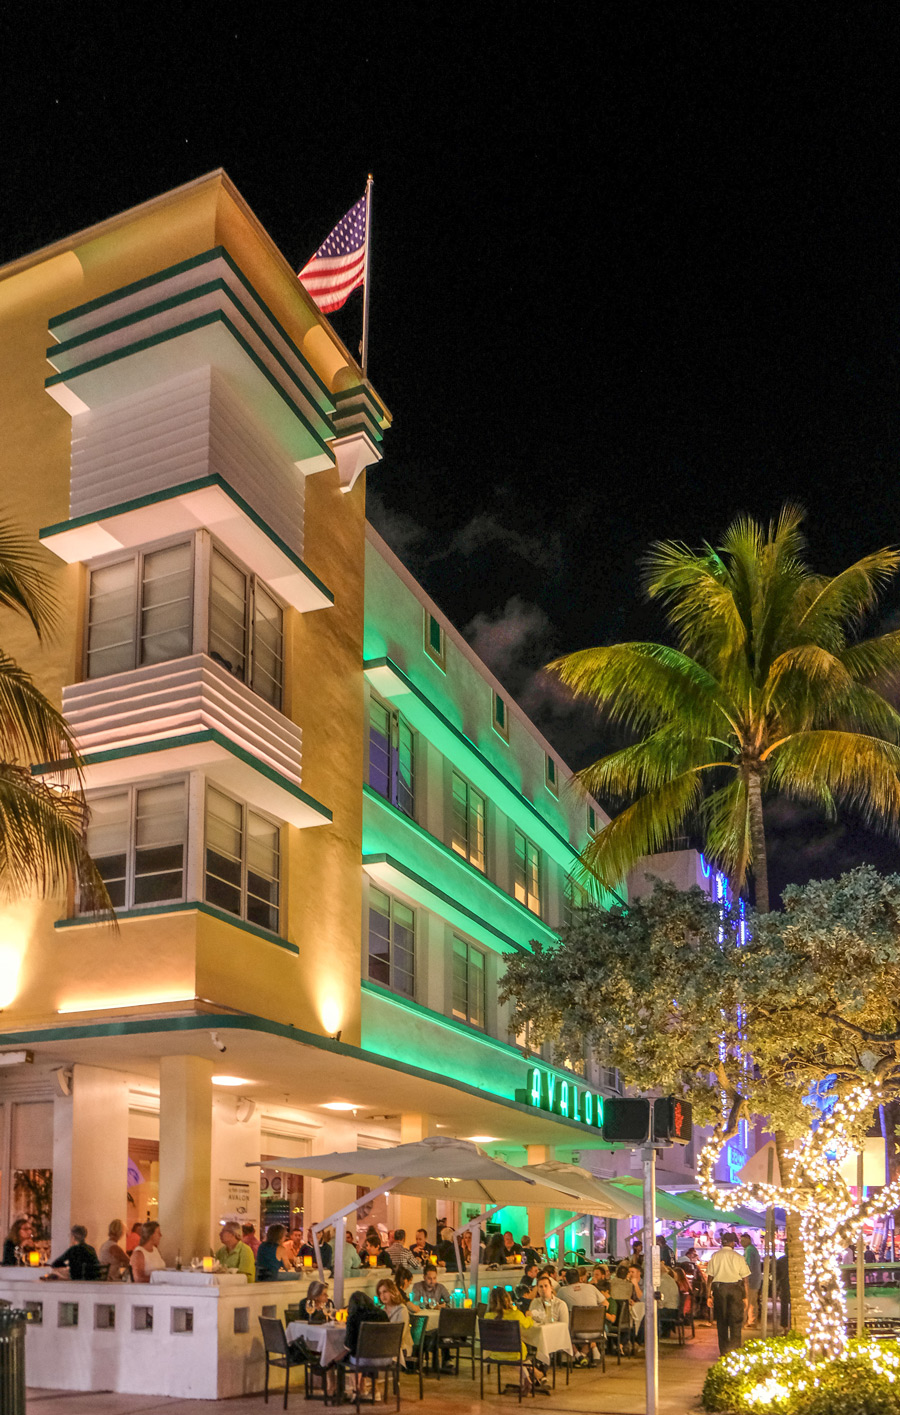 Official Site: Avalon Hotel Miami Beach, FL